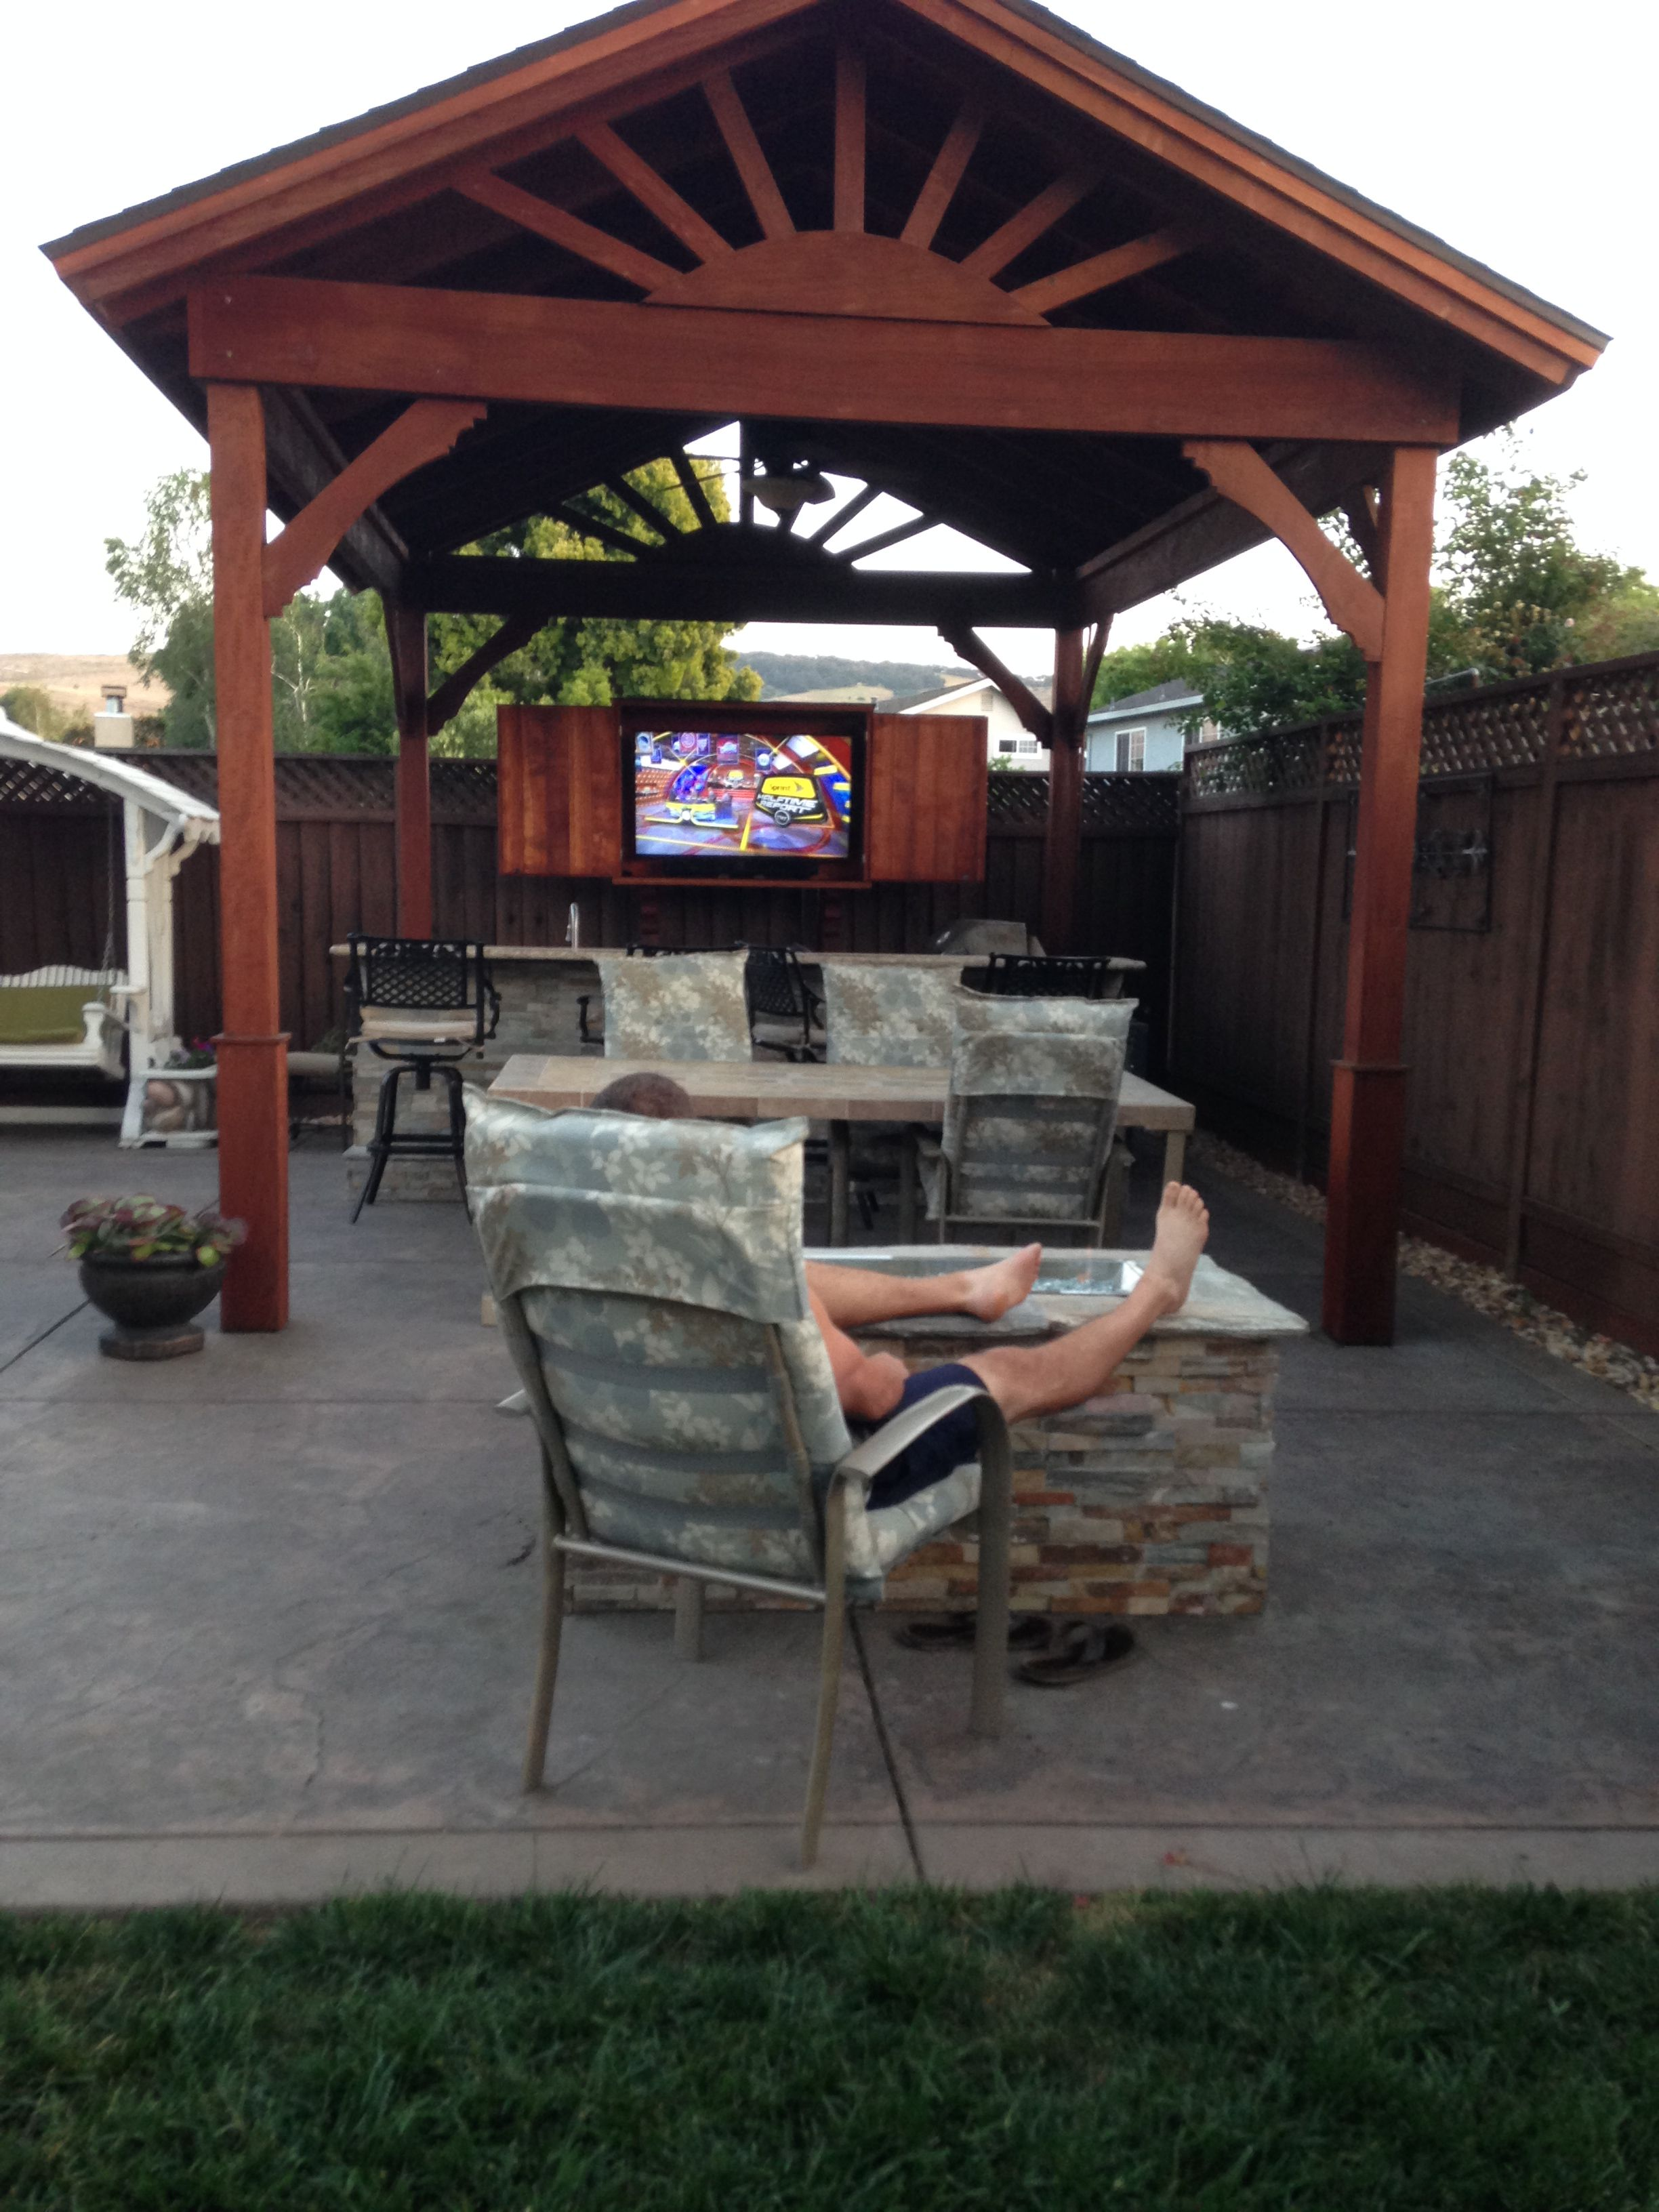 Kick Off The Football Season By Installing An Outdoor Tv Here Is 5 Things You Should Consider Before Install Your